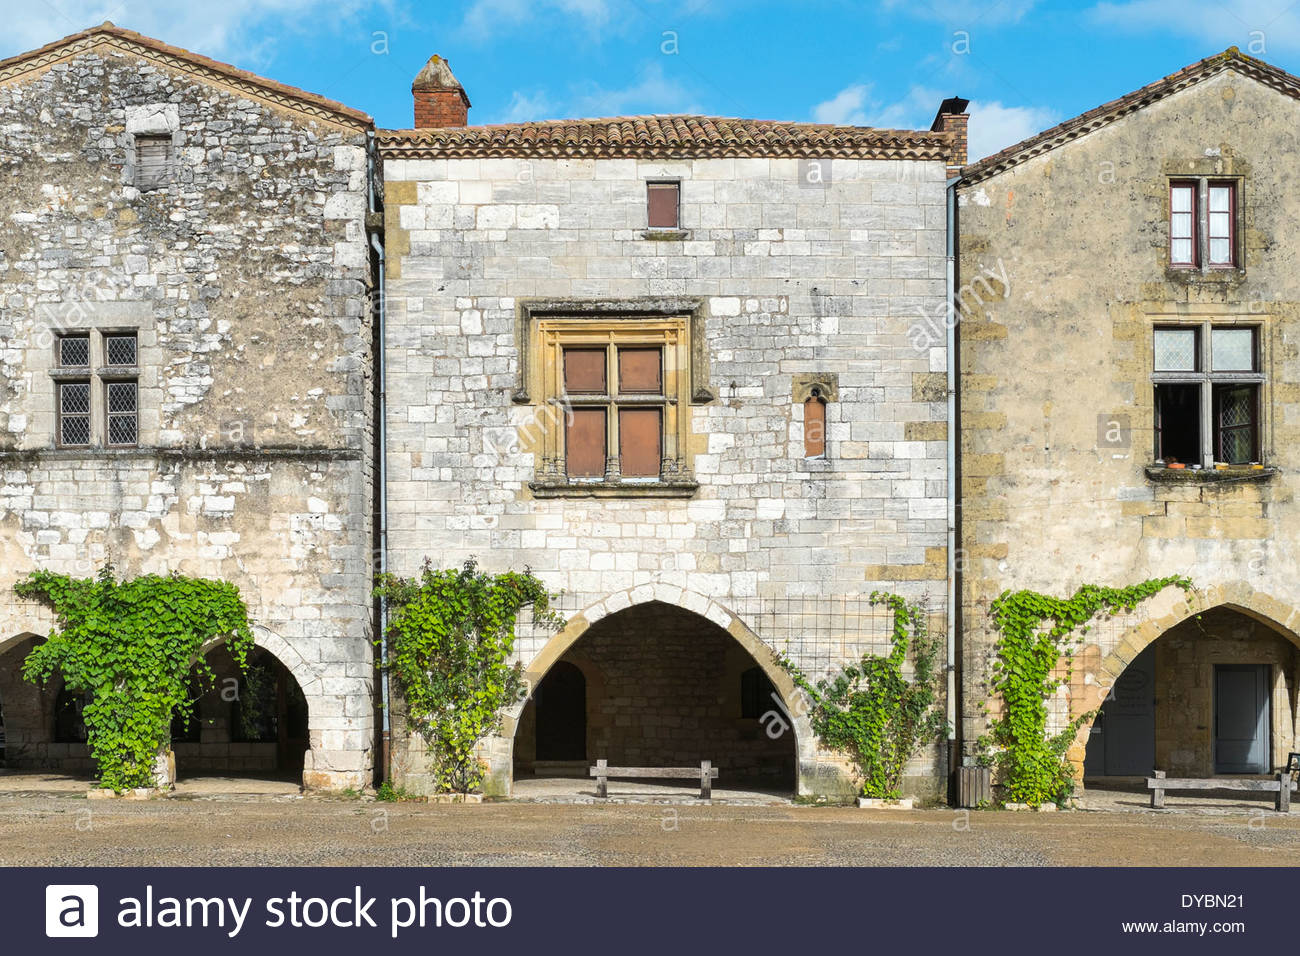 town square of French bastide town of Monpazier, Dordogne department, Aquitaine, France Stock Photo